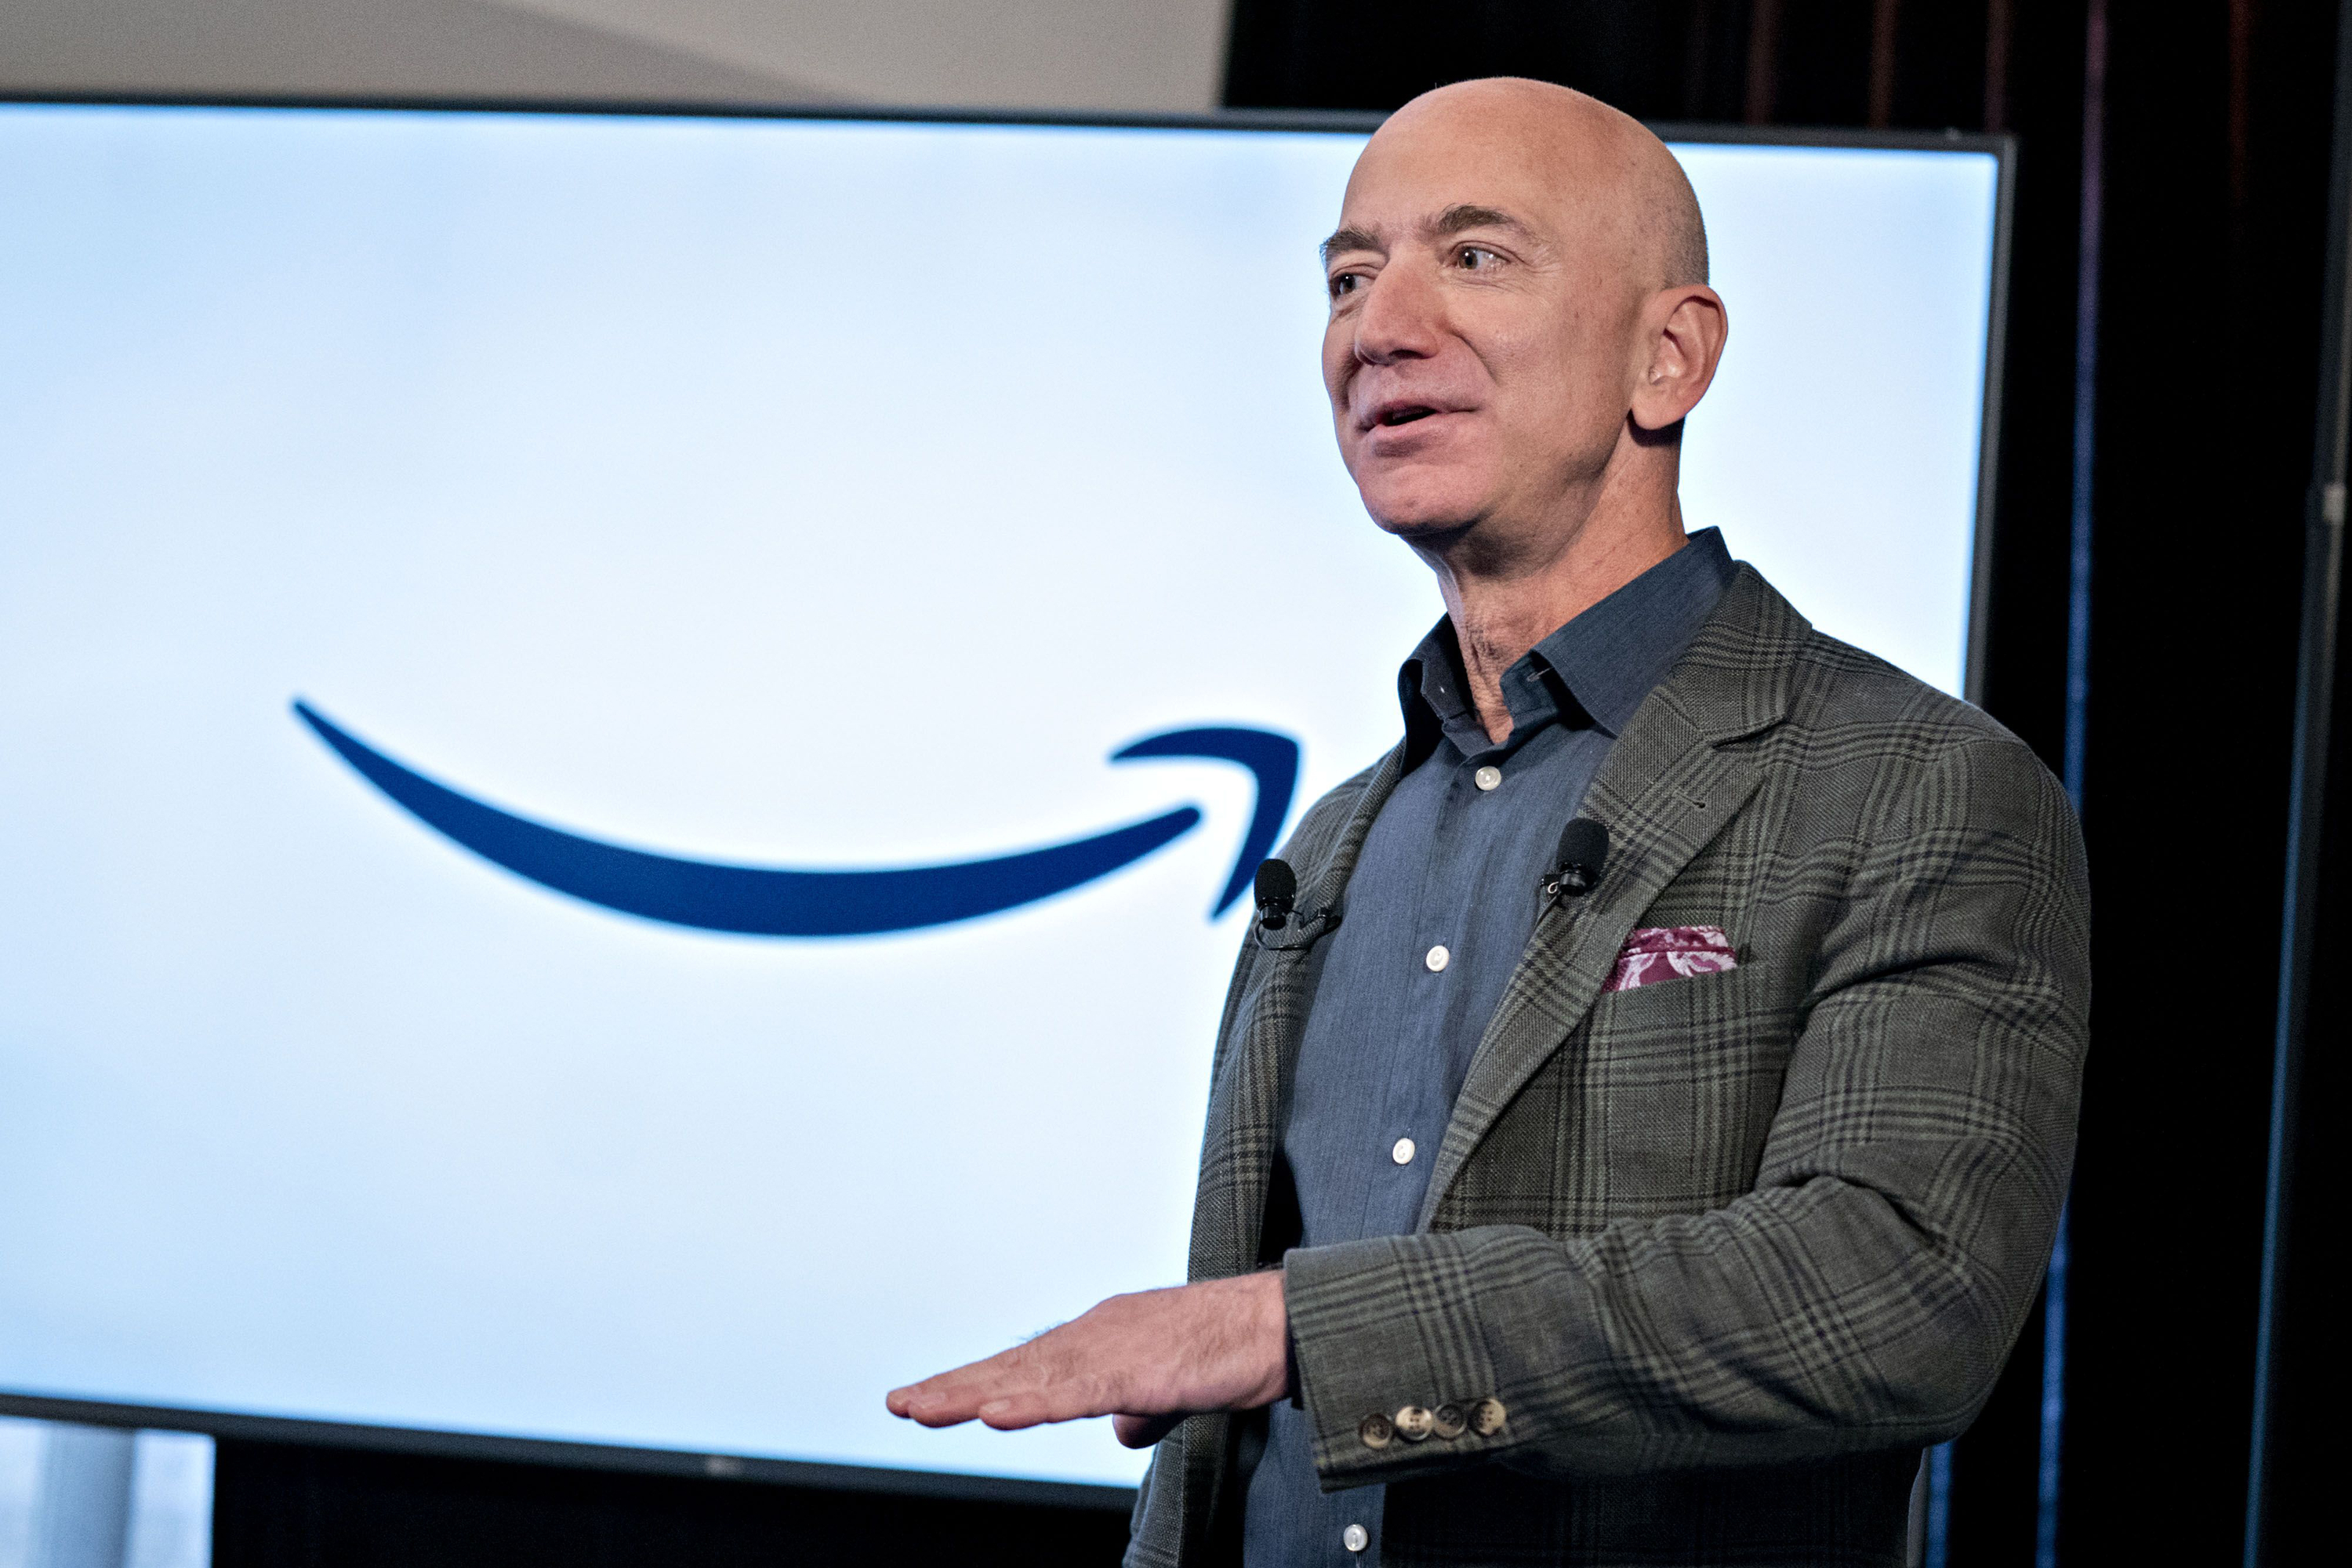 Jeff Bezos says Amazon must treat its workers better, following union vote